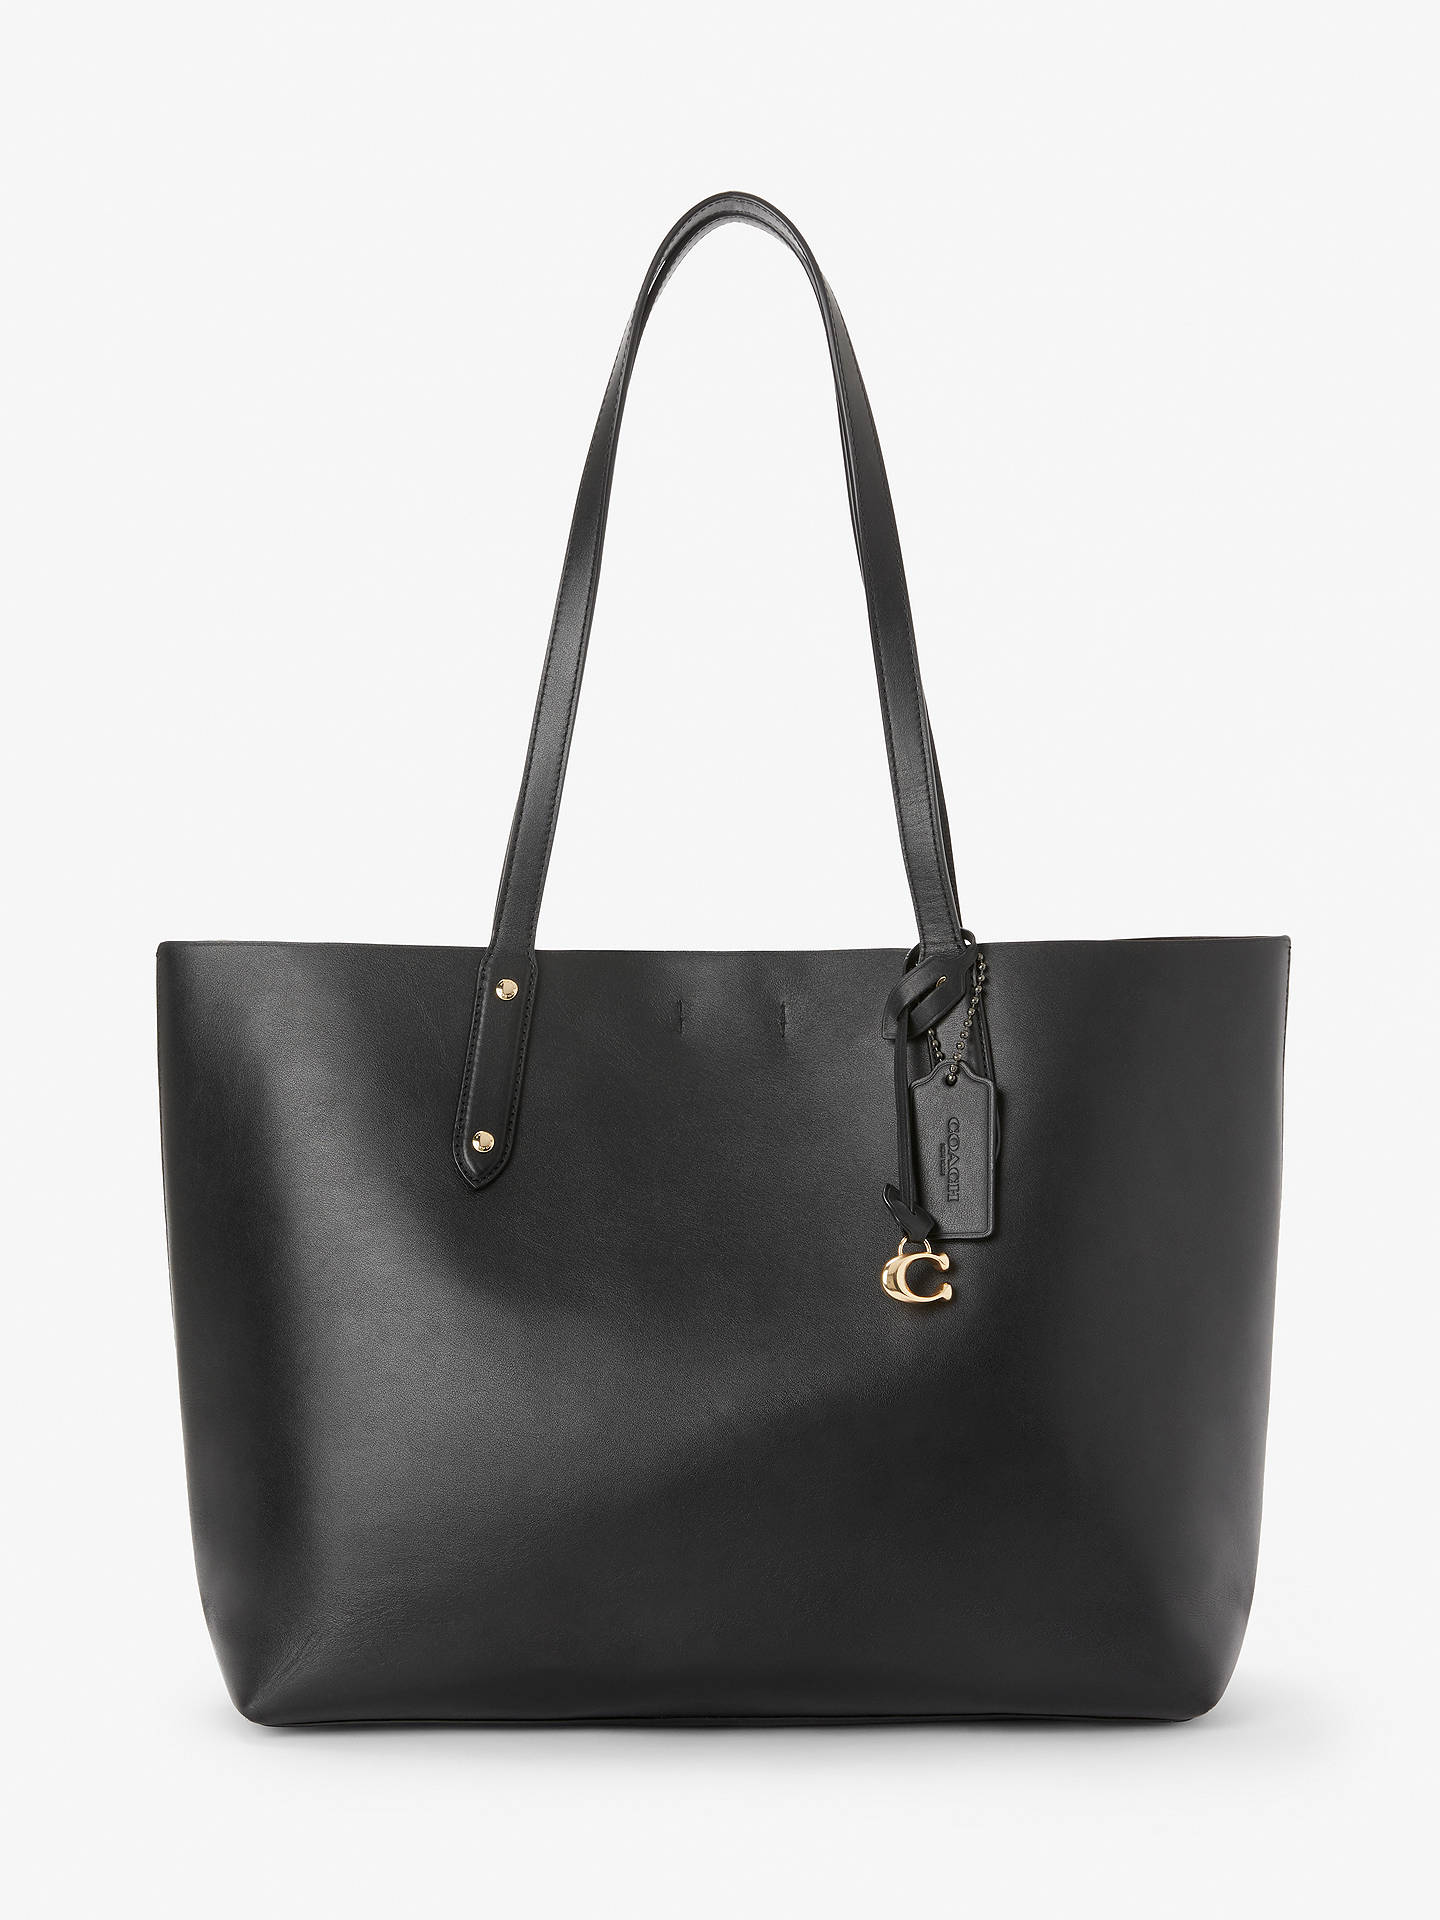 85b5696604 Coach Central Leather Tote Bag, Black